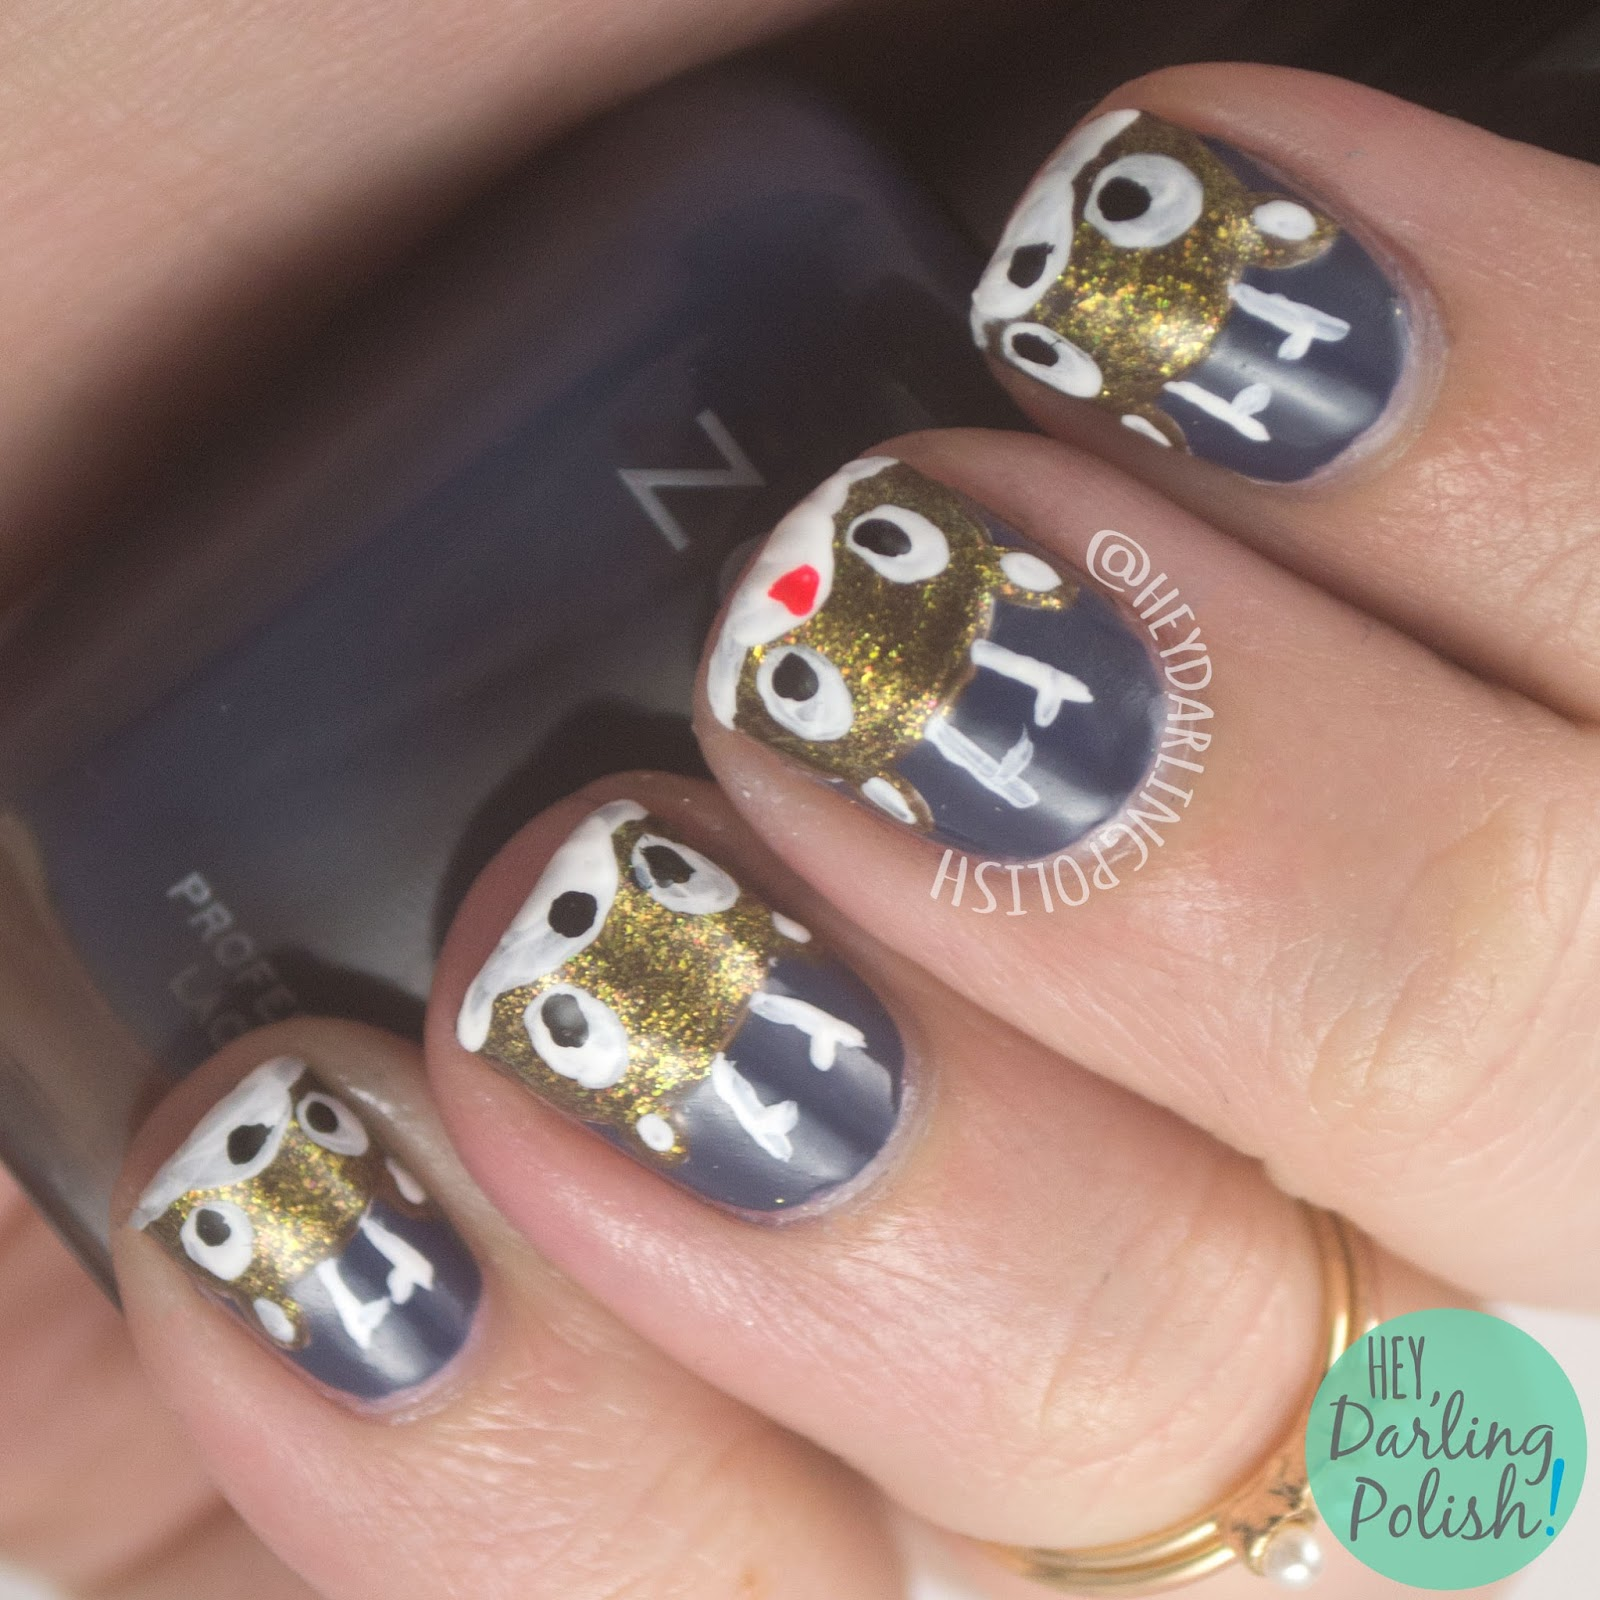 nails, nail art, nail polish, rudolph, reindeer, holiday nail art, christmas, hey darling polish, nail linkup, nailllinkup